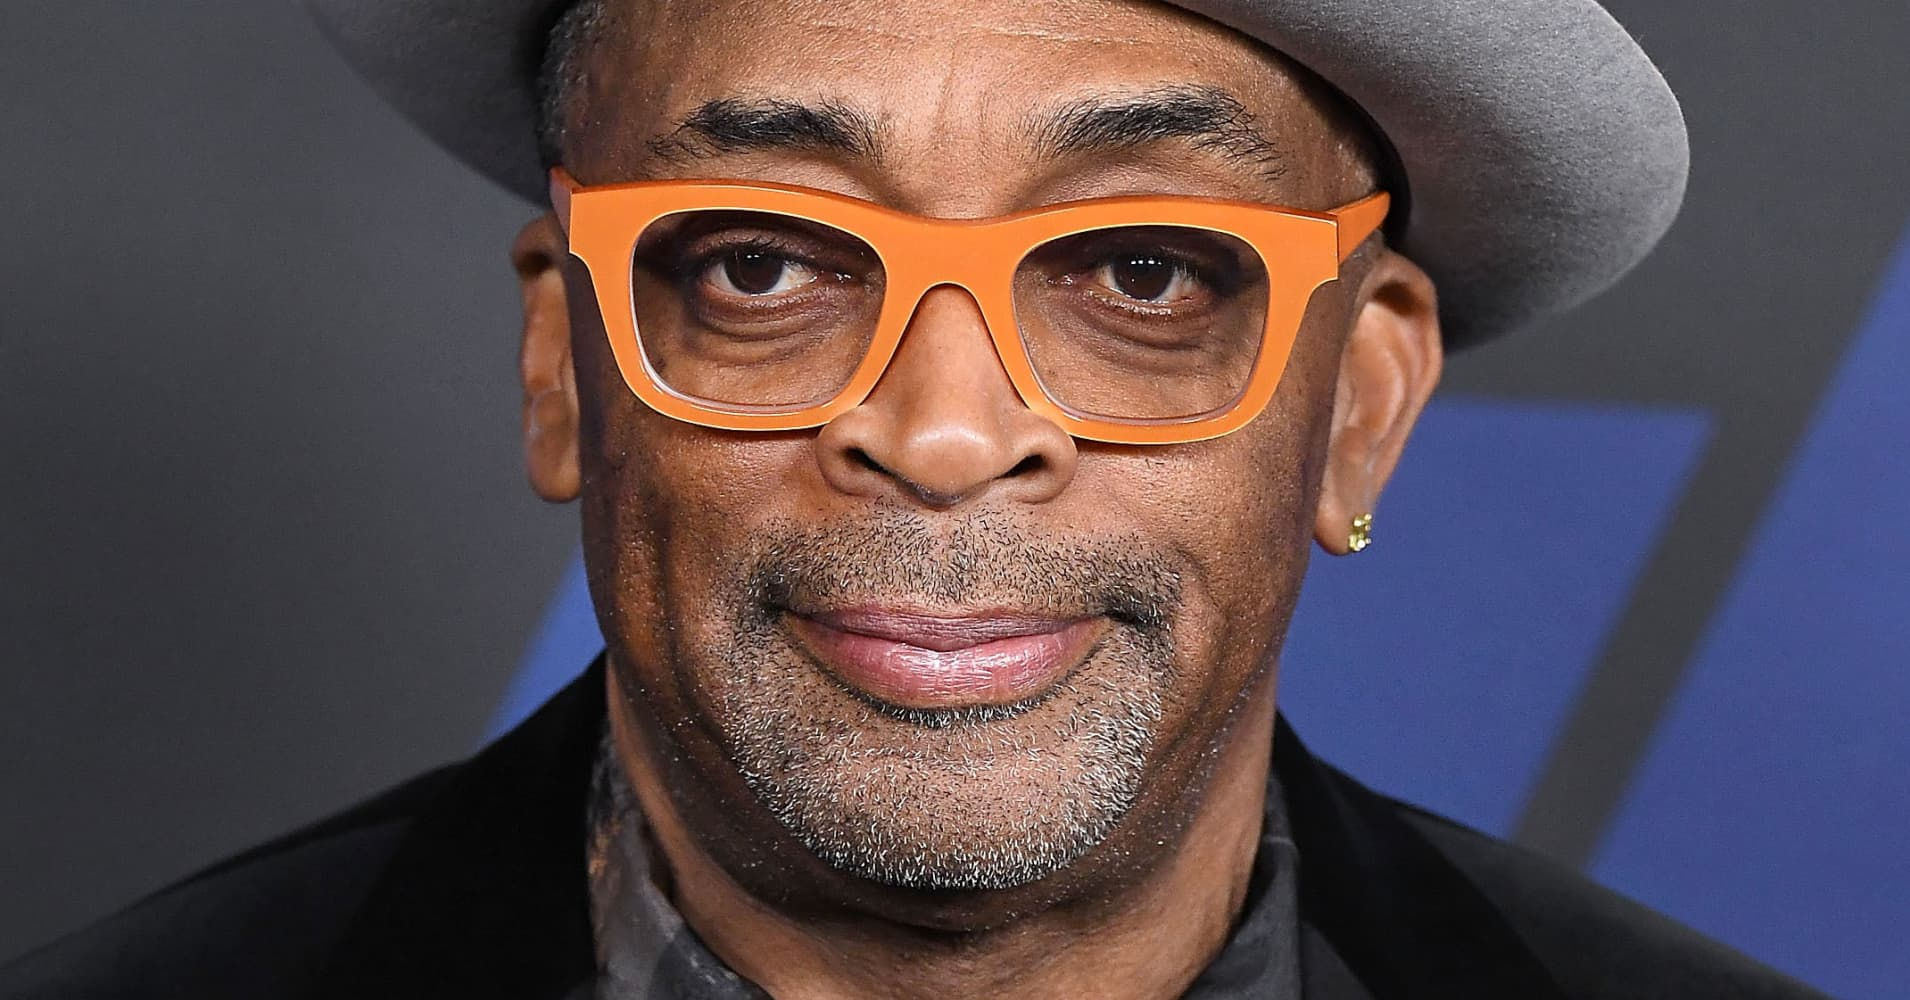 Spike Lee learned a crucial career lesson from his Oscar snub in 1990